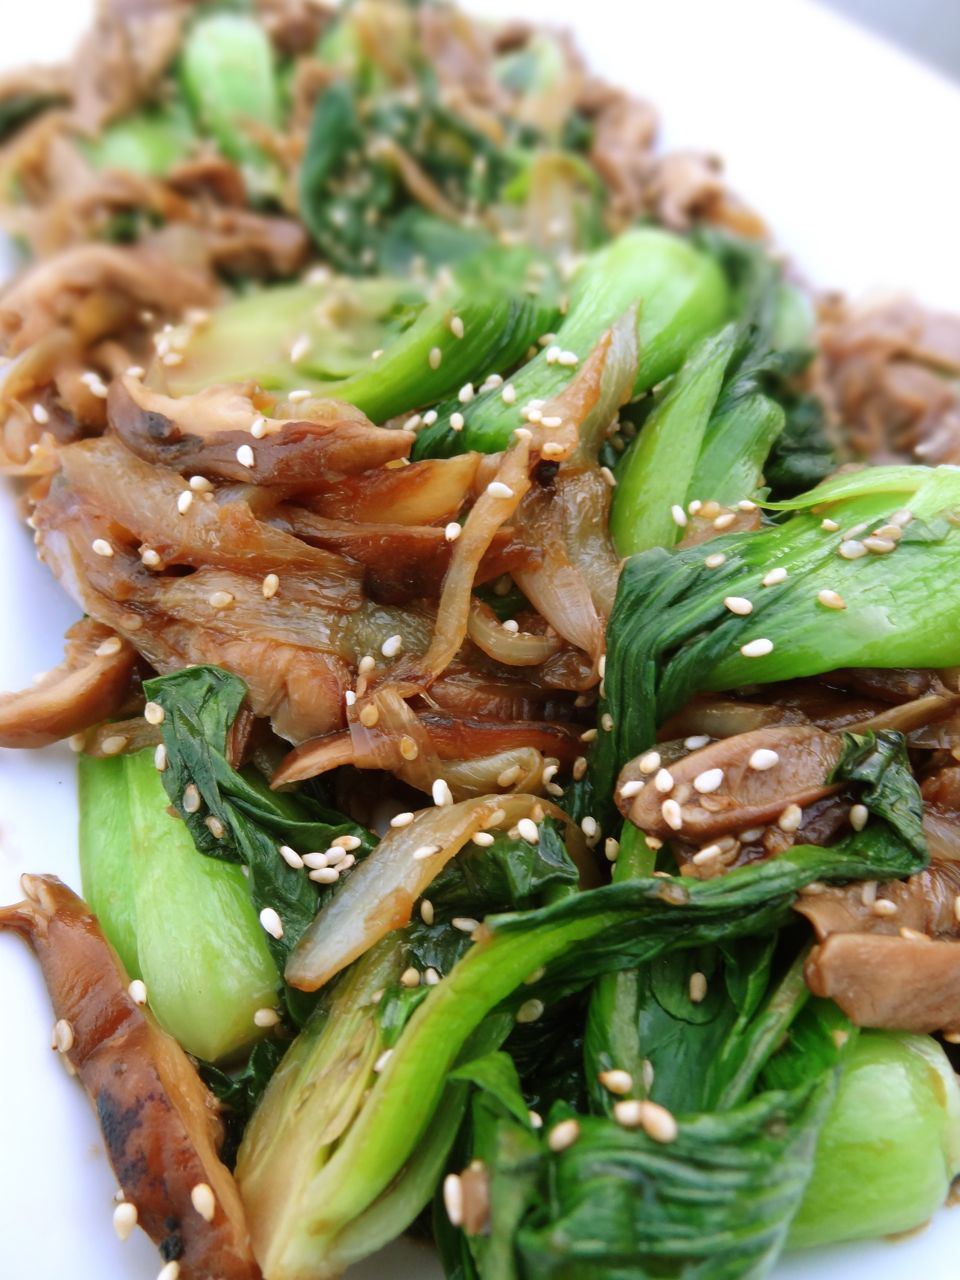 bok choy seared baby bok choy with tofu shiitakes baby bok choy with ...